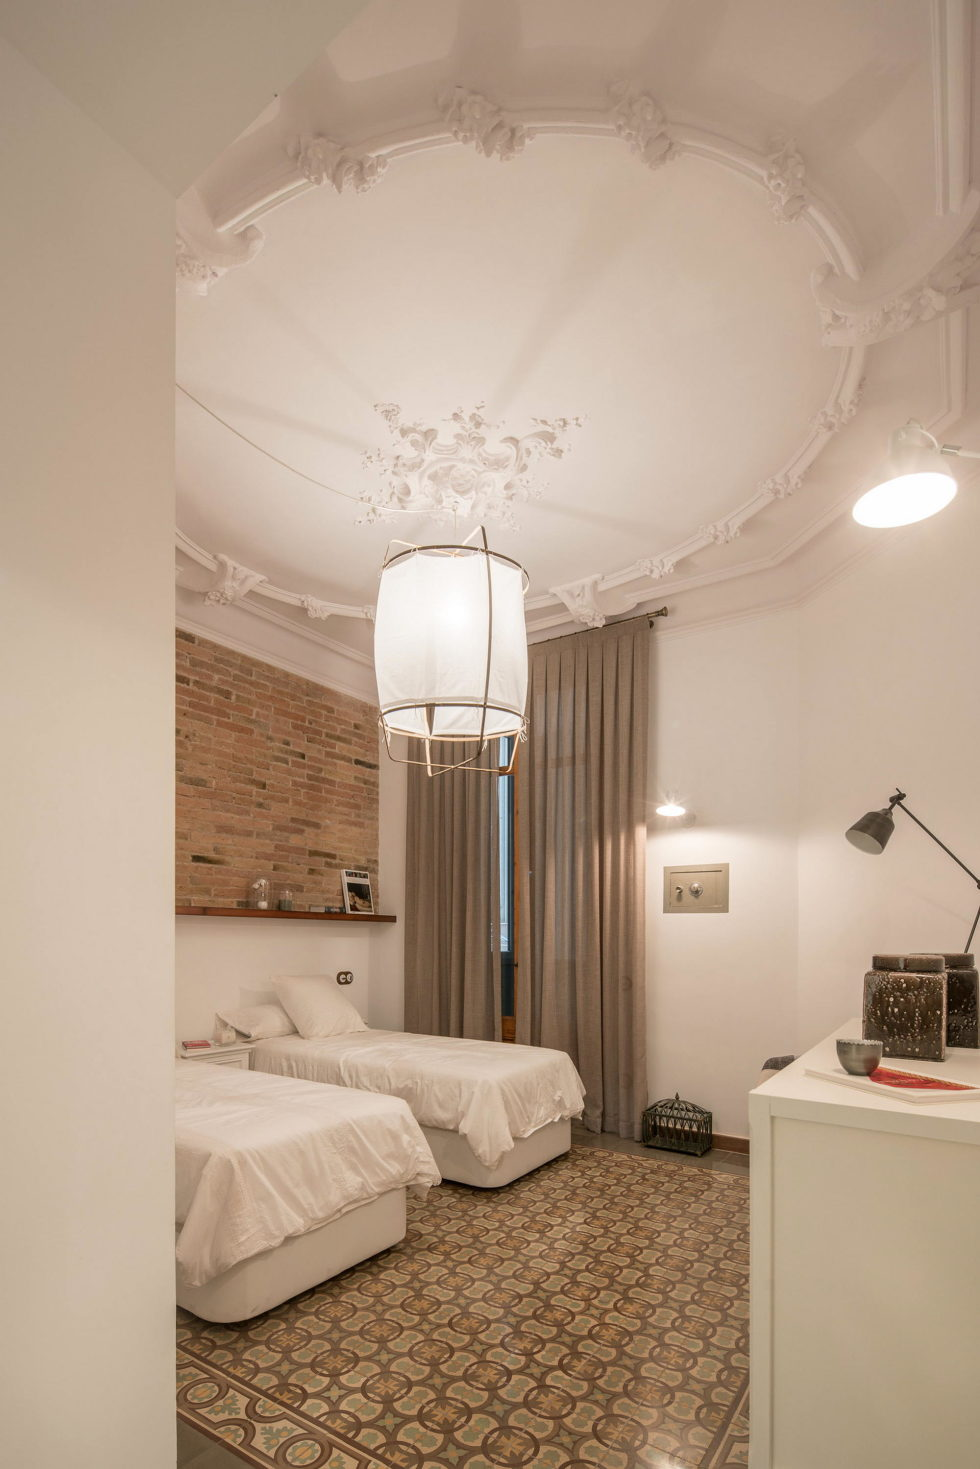 The Apartment Of 120 Sq Meters In Barcelona 9